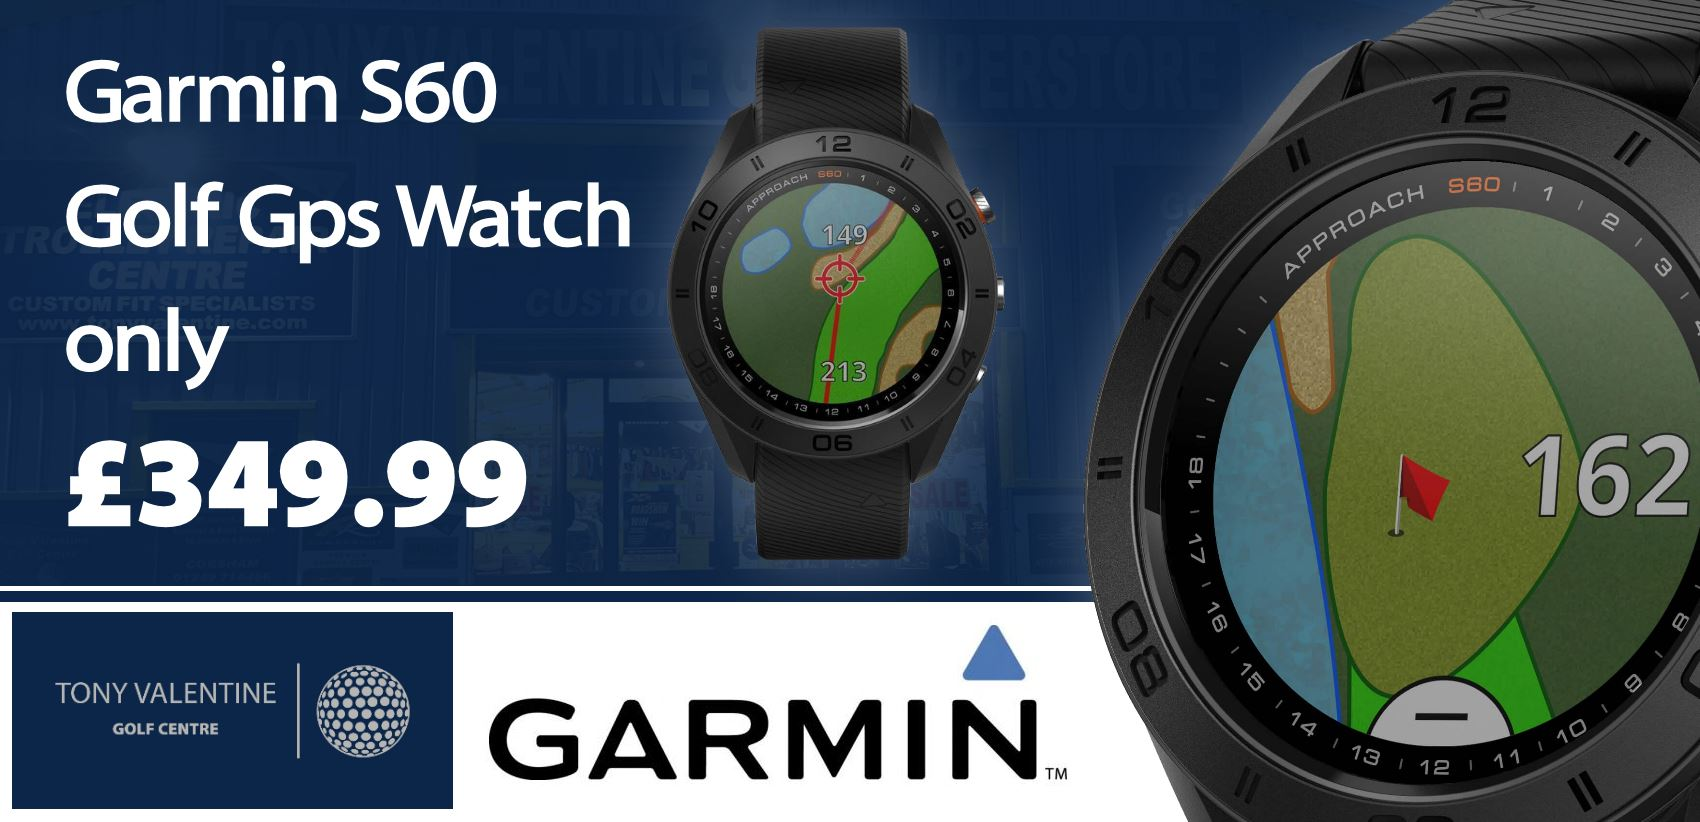 Garmin S60 Watch